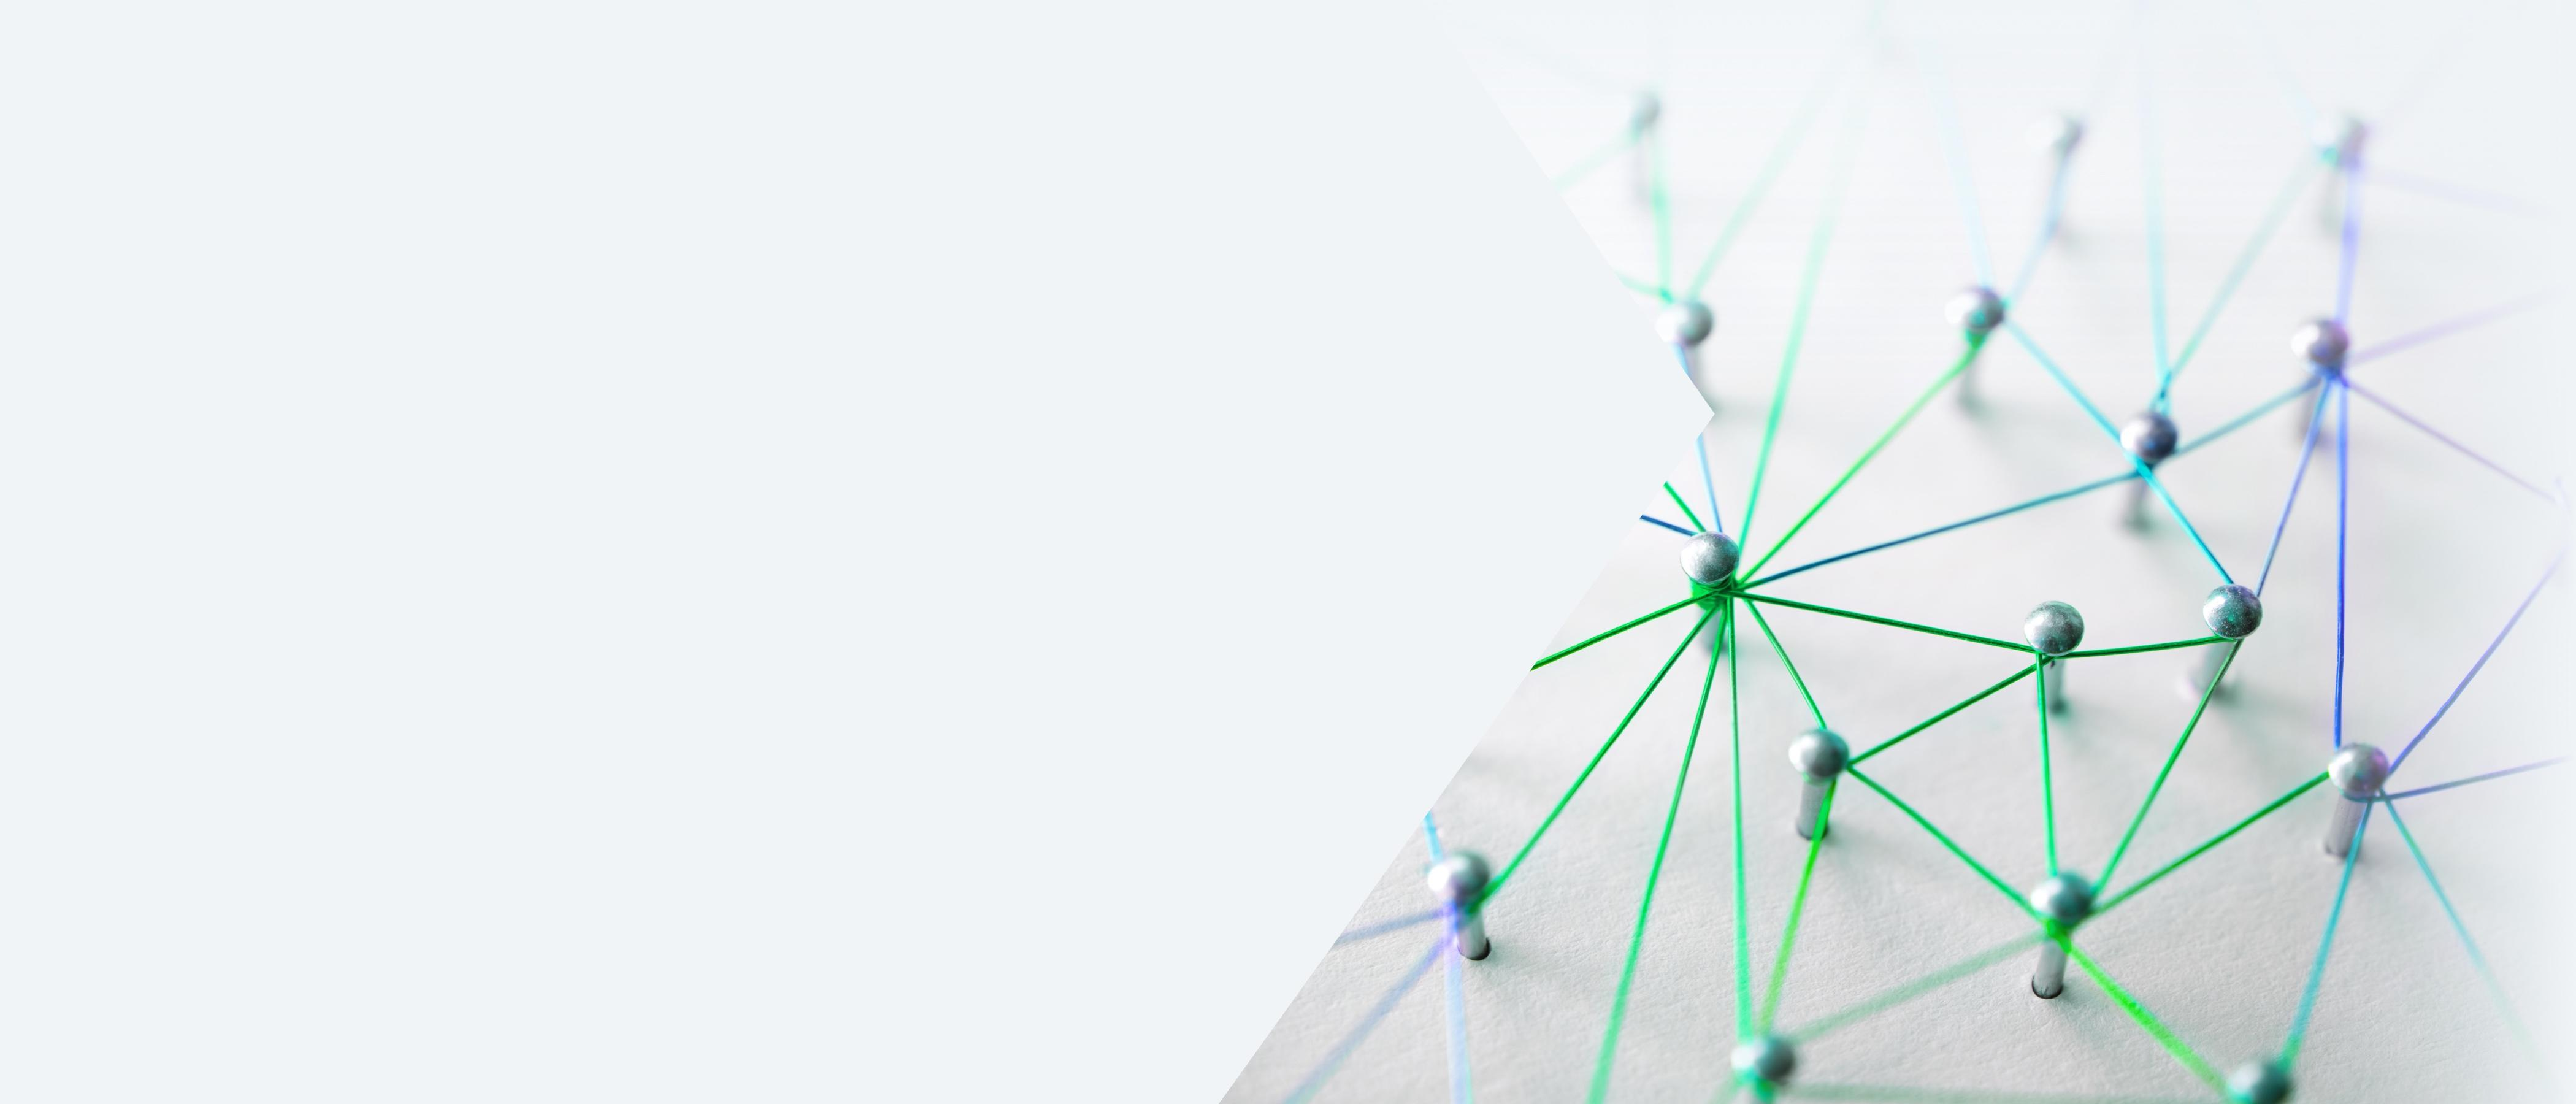 Web of blue, purple, and green wires on a white background